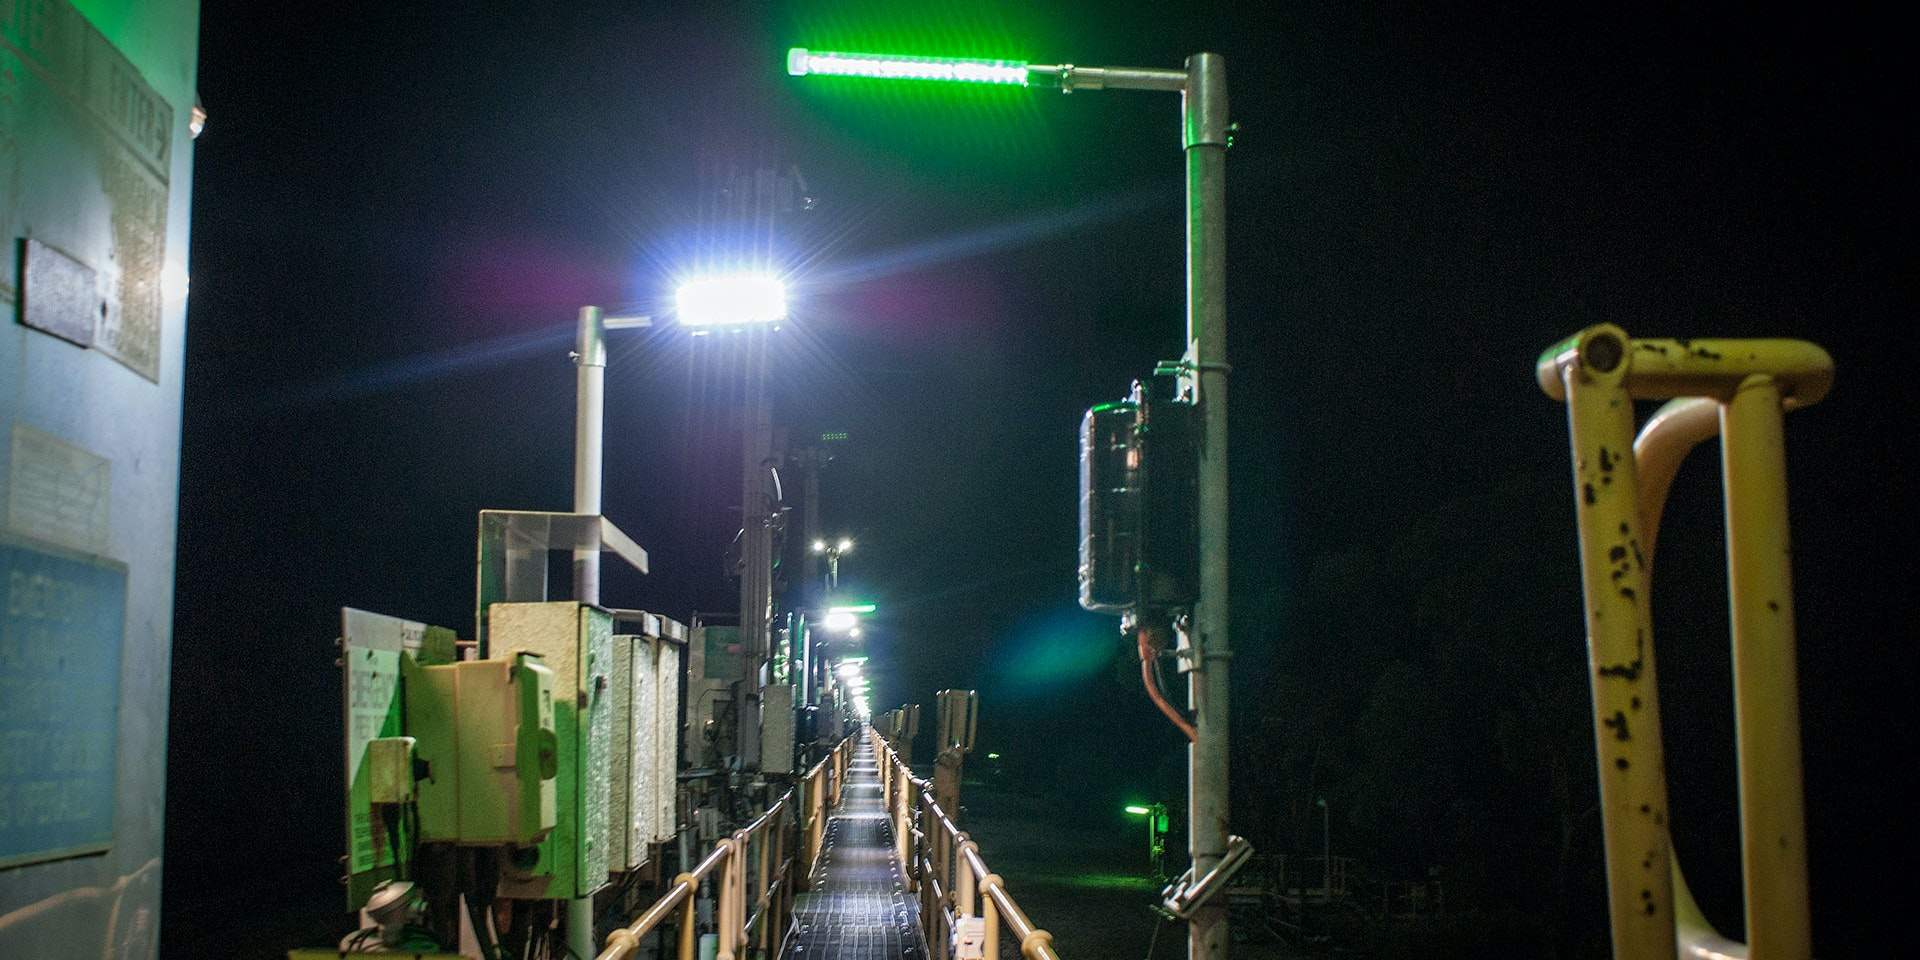 Eye Wash Station LED Safety Beacon Light in application, installed on an axis transfer station on a copper refinery